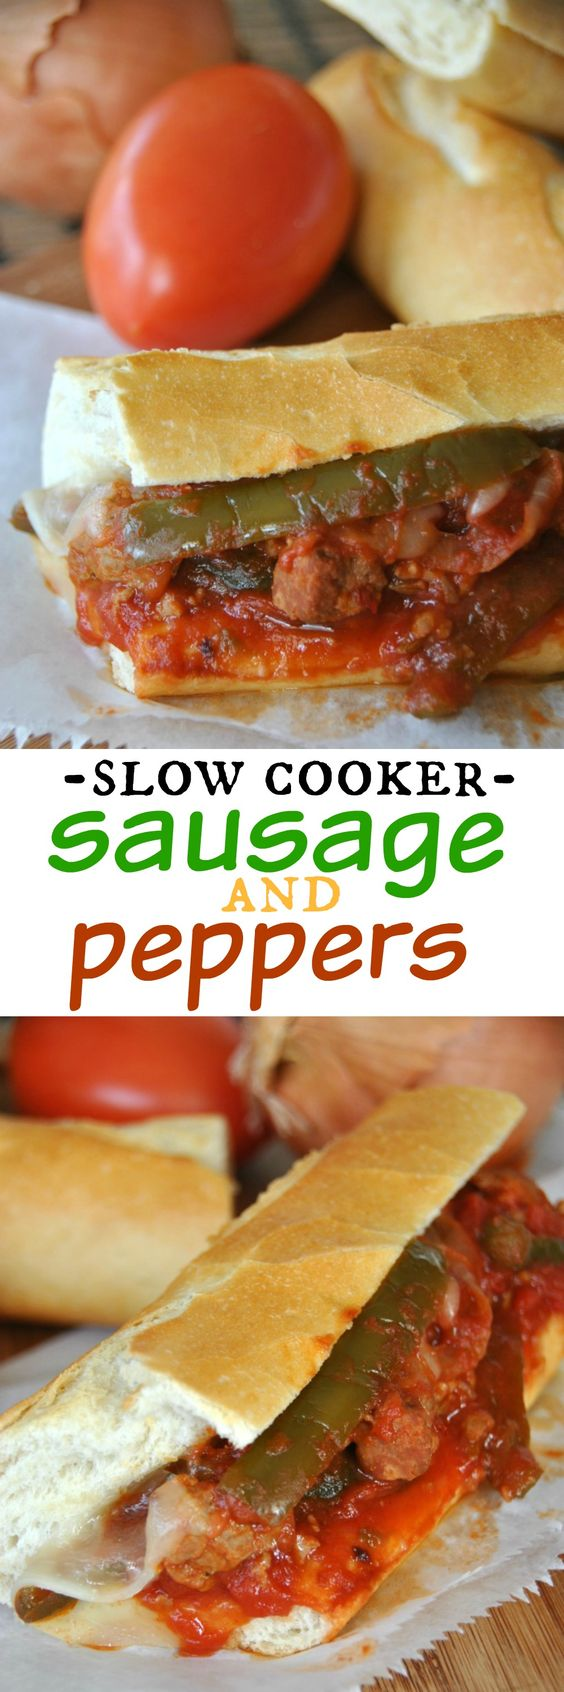 Sausage and peppers, Sausages and Crockpot on Pinterest